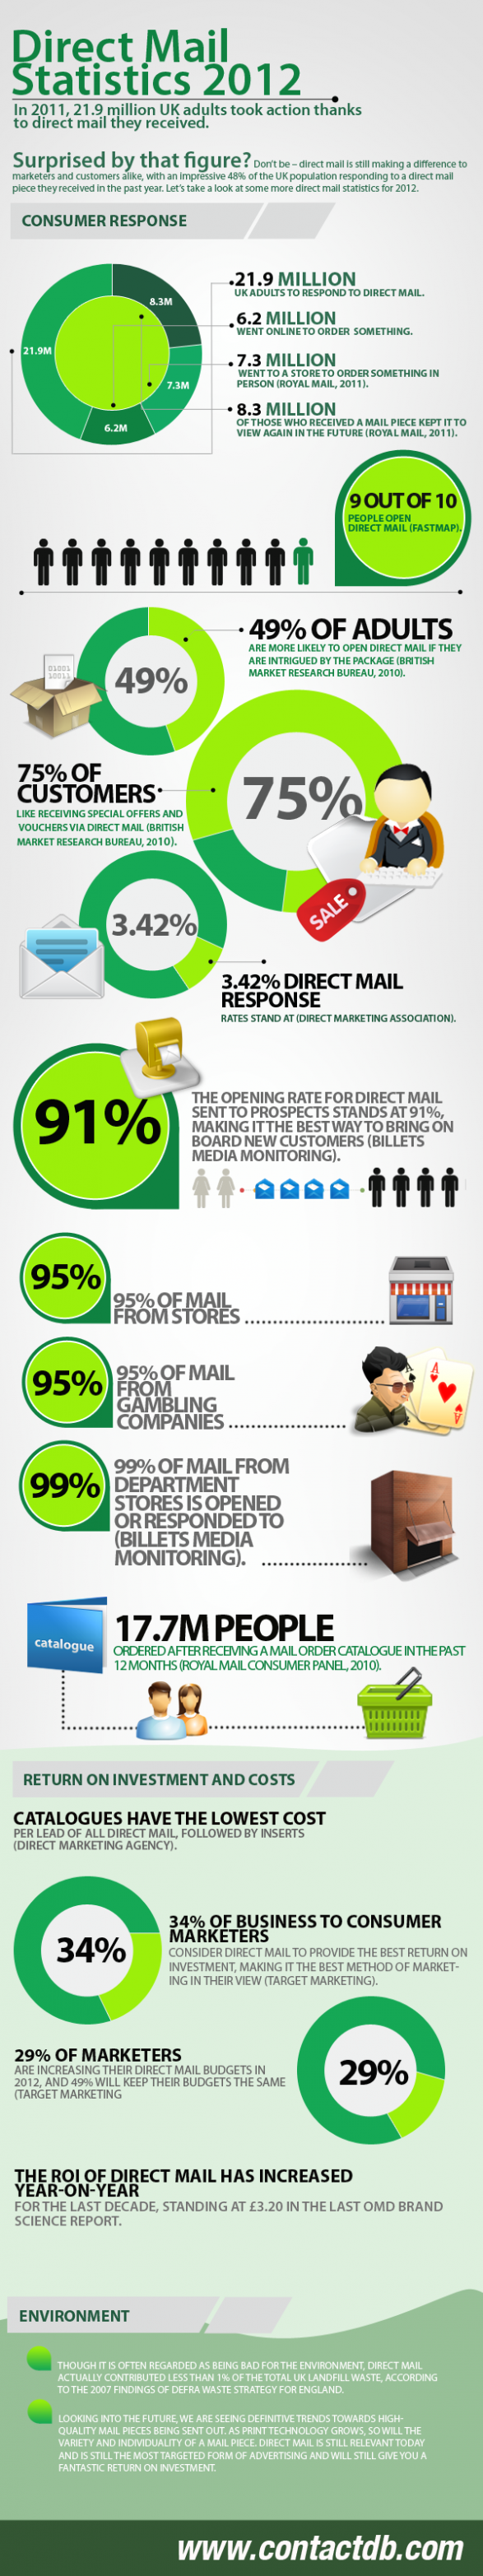 Statistics for Direct Mail